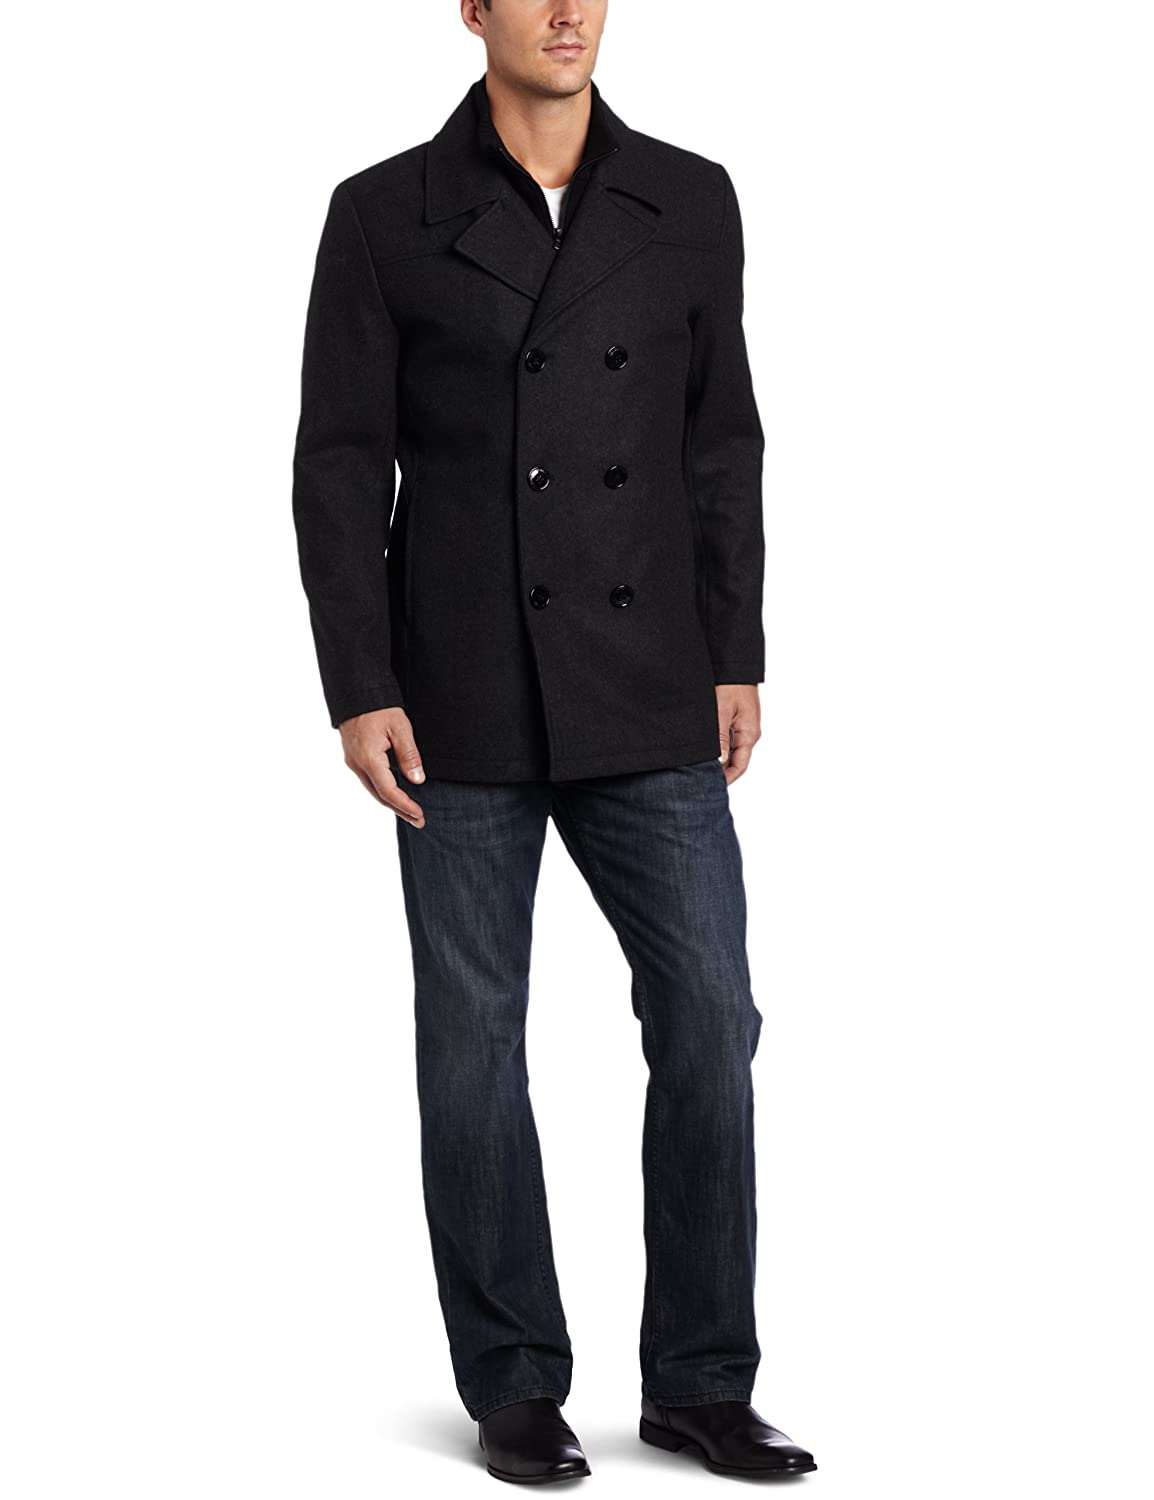 Kenneth Cole Men's Peacoat With Bib Outerwear, Charcoal, Medium $50